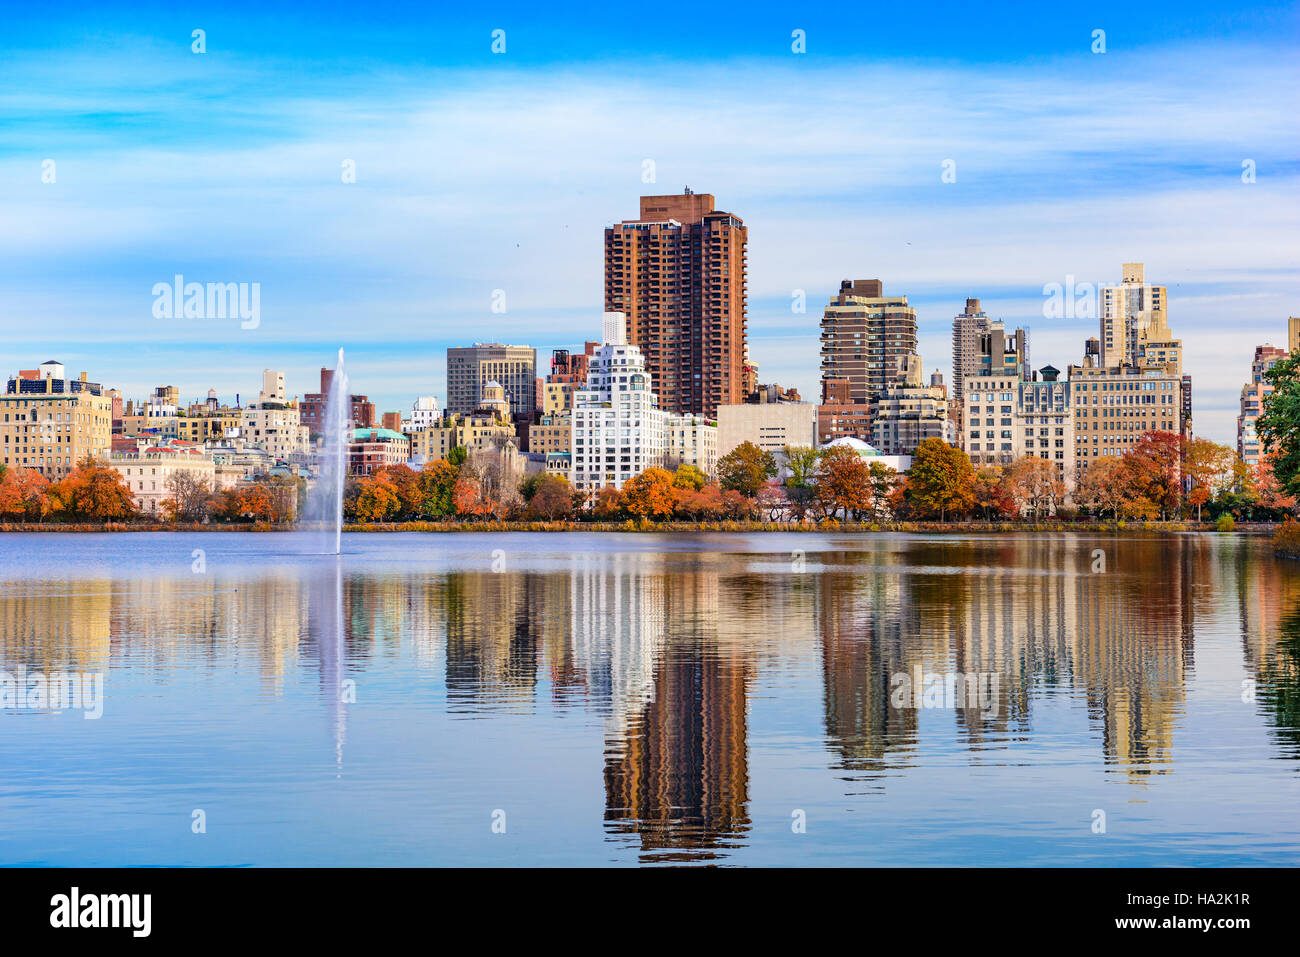 New York City at Central Park in the autumn. - Stock Image